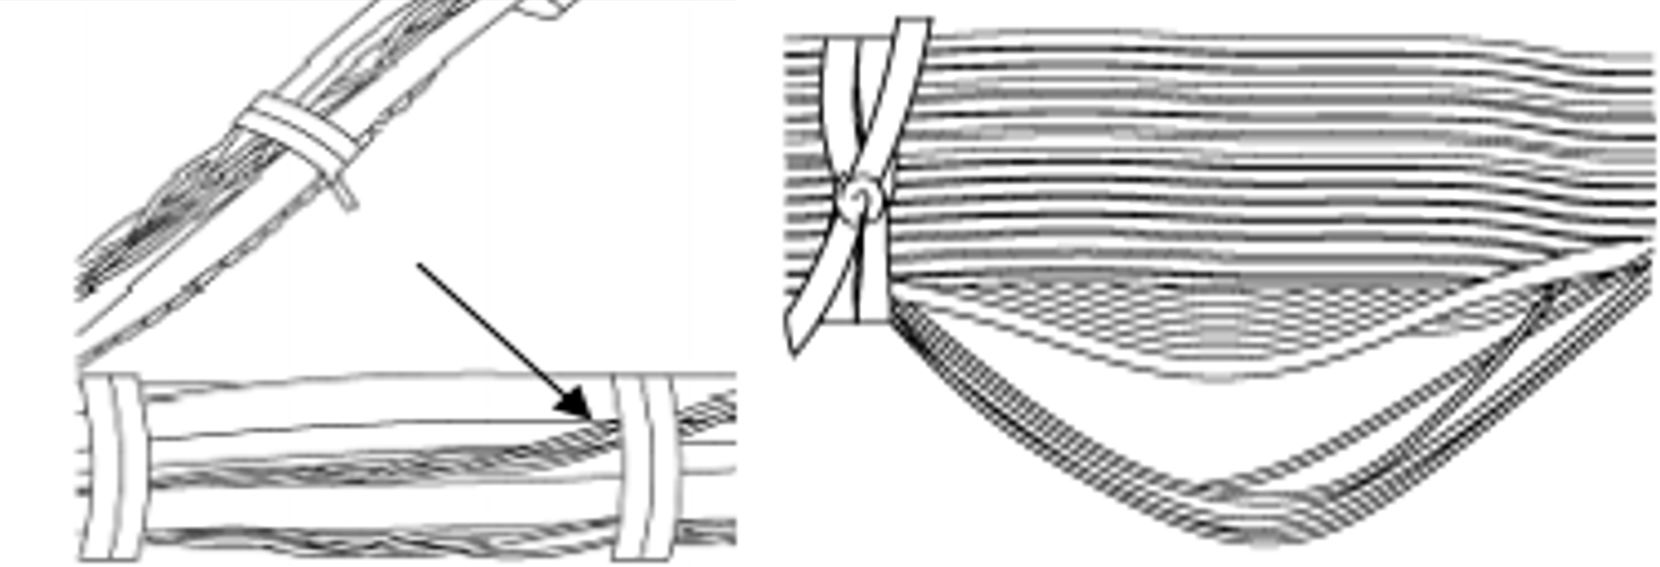 Aerospace Wire Harness Sleeving : 31 Wiring Diagram Images